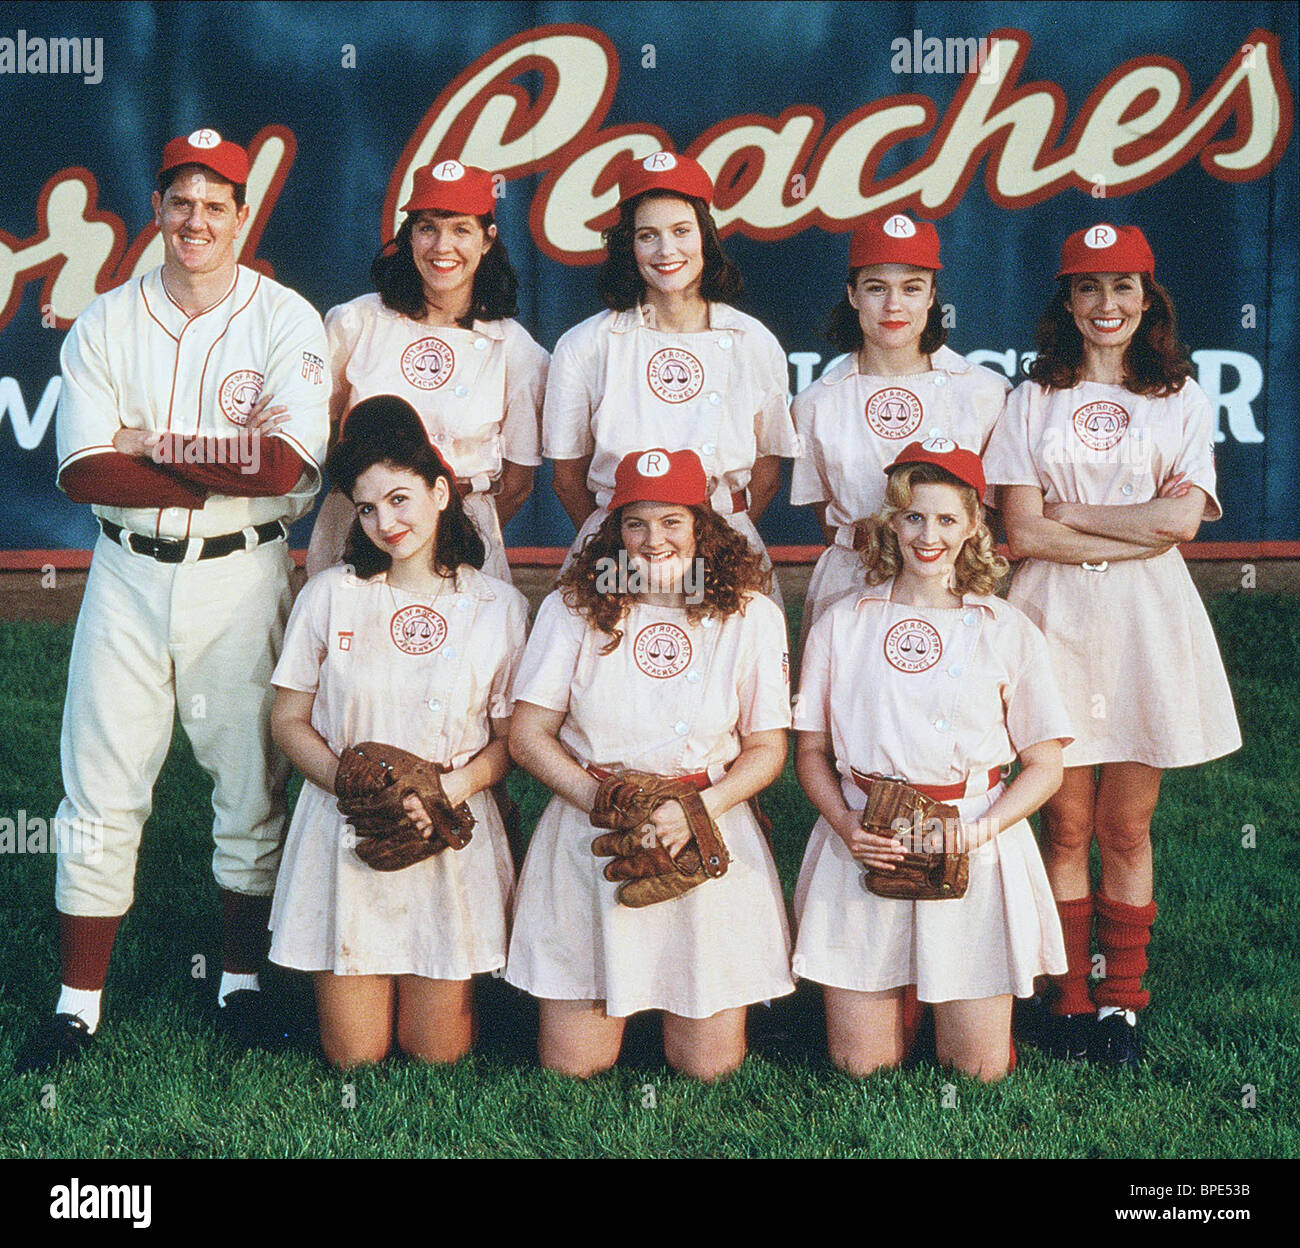 Carey Lowell a league of their own